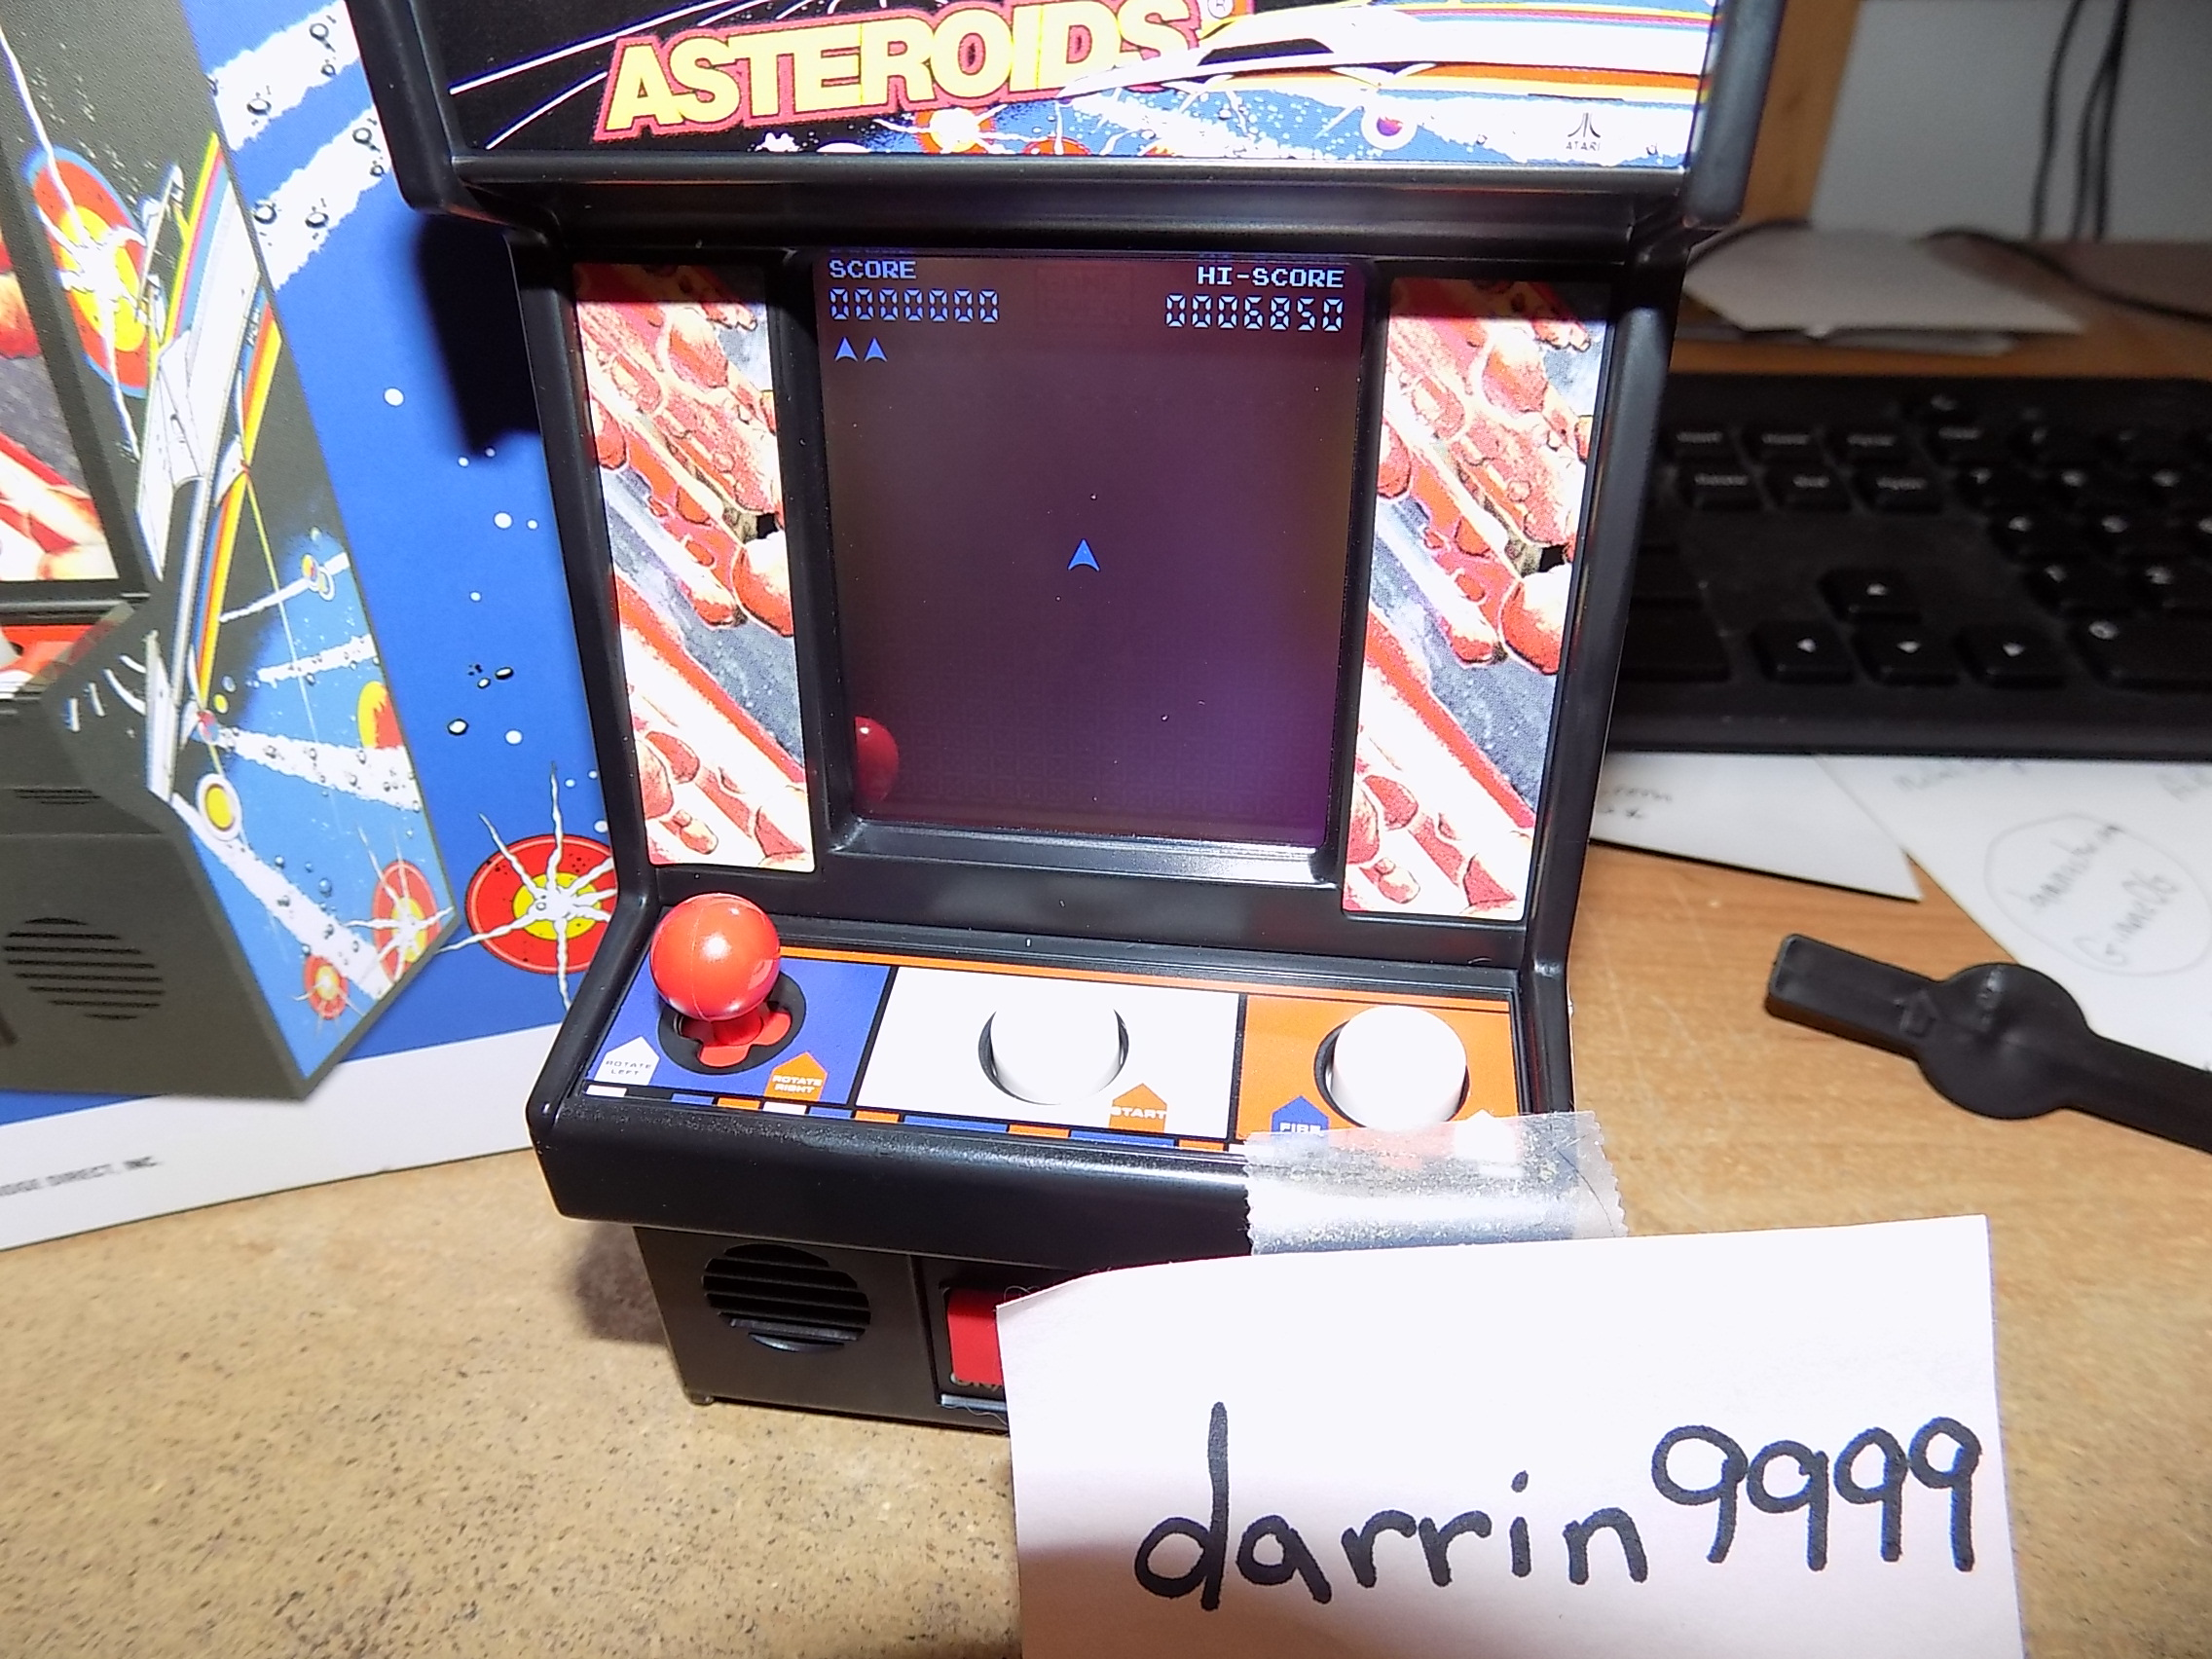 darrin9999: Arcade Classics 05: Asteroids (Dedicated Handheld) 6,850 points on 2018-03-12 10:00:14